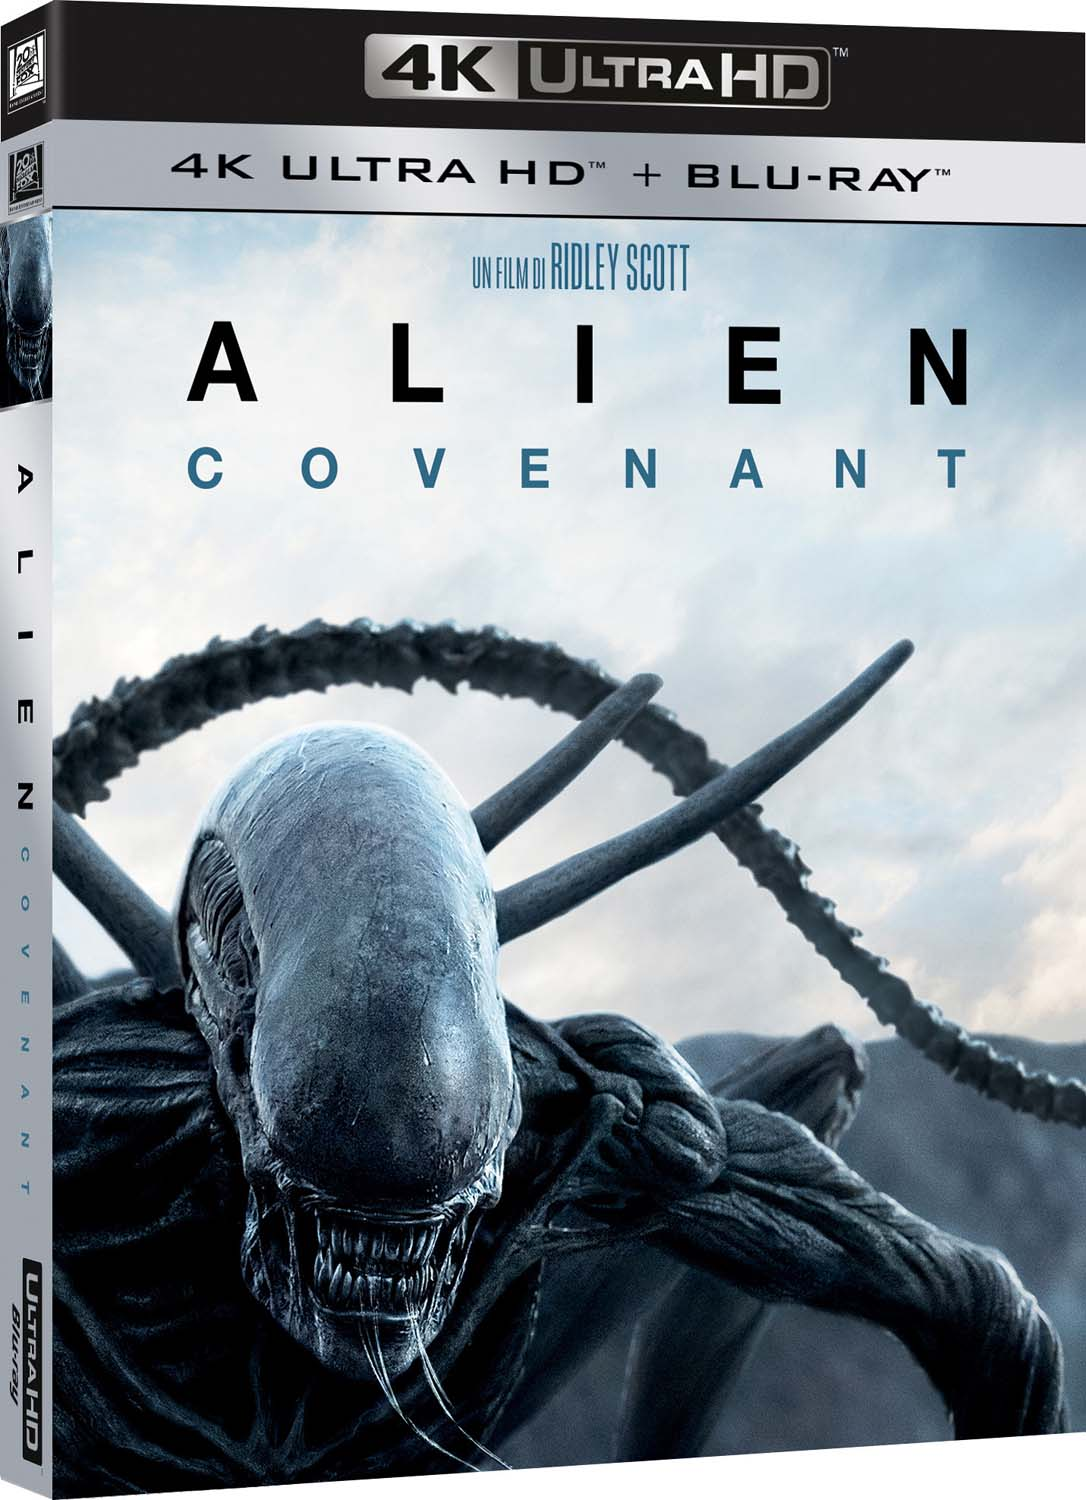 ALIEN: COVENANT (4K ULTRA HD+BLU-RAY)